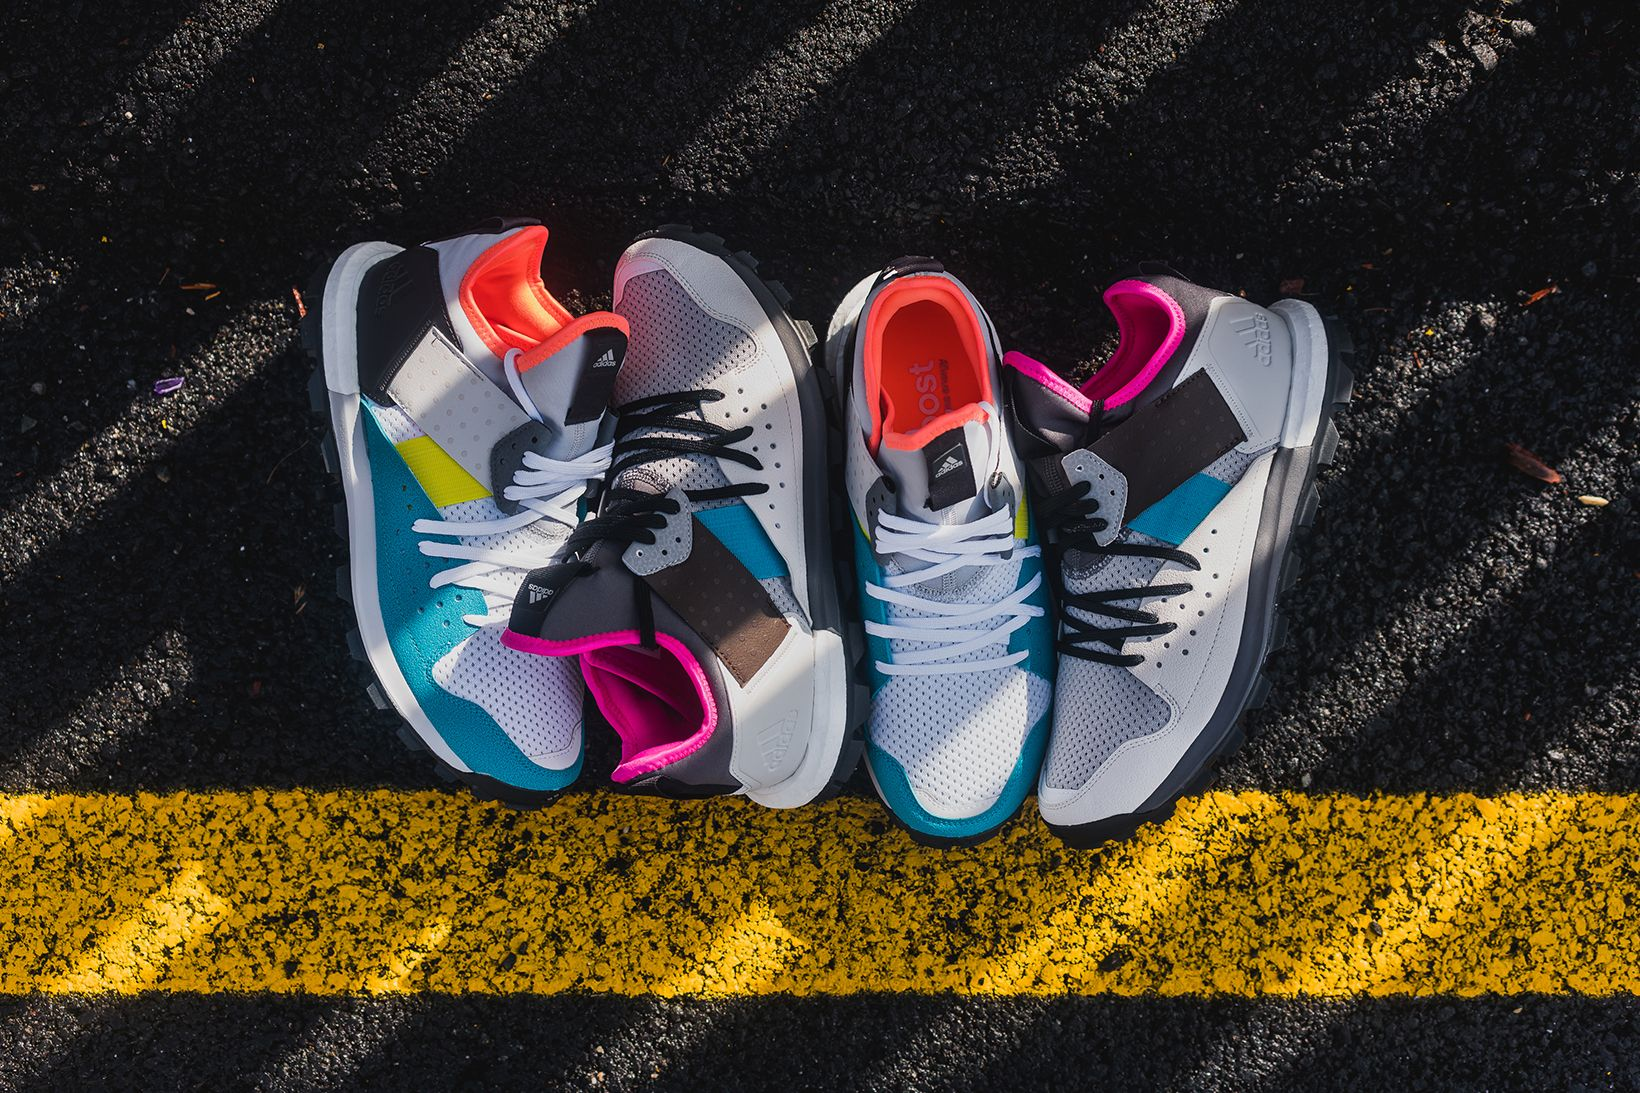 Kolor Puts Its Spin On The Adidas Response Trail Boost Adidas Response Adidas Ultra Boost Uncaged Sneakers